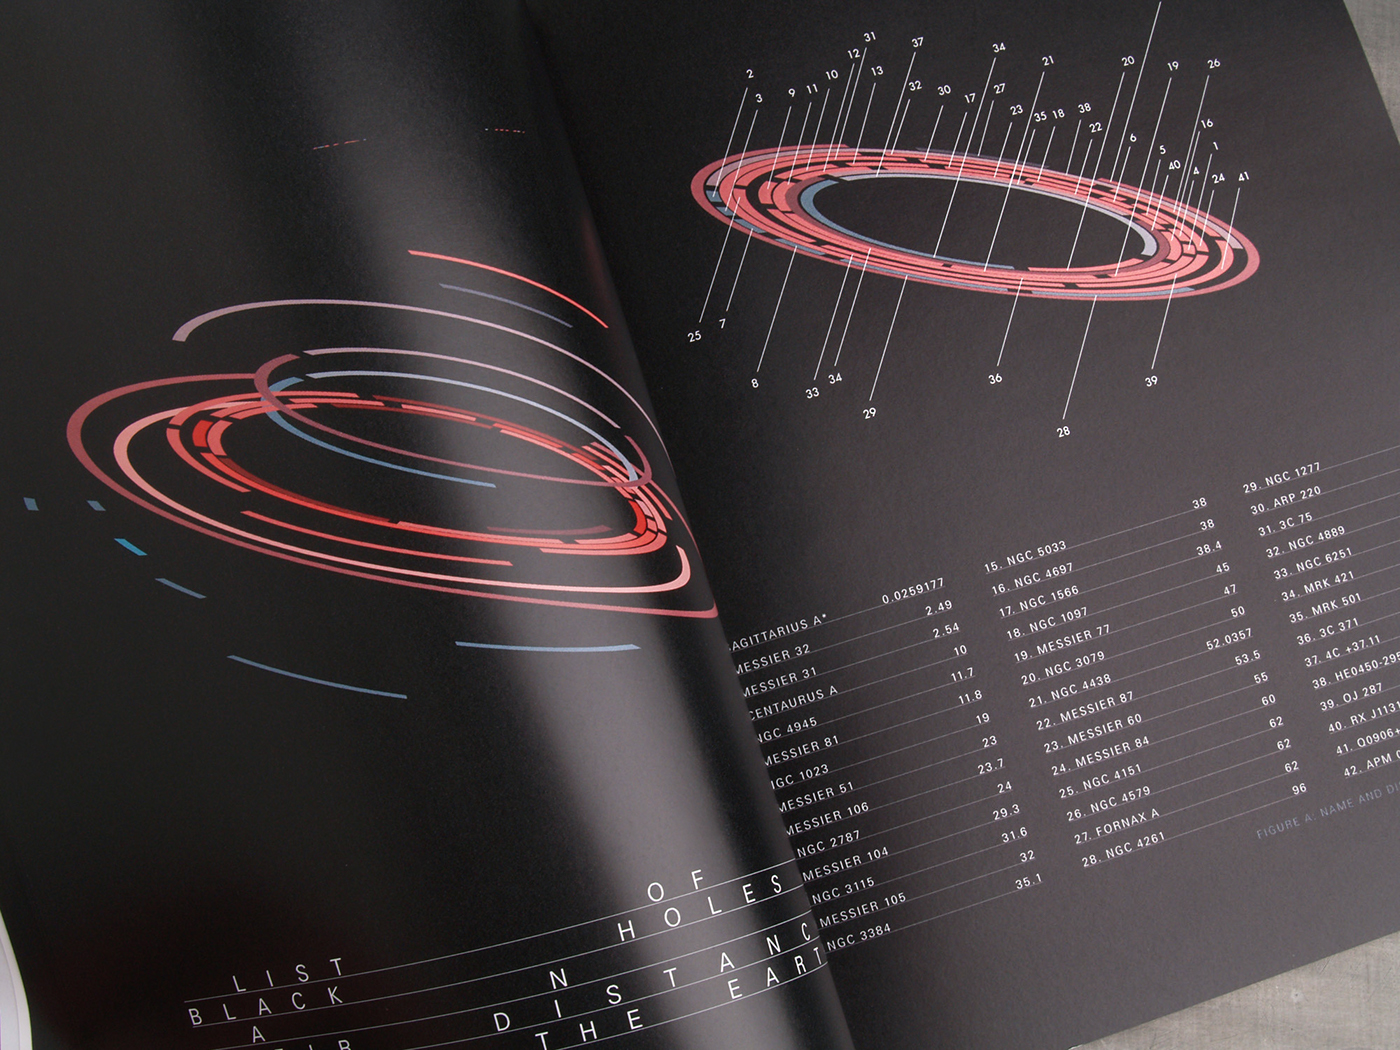 Black Holes Space  stellar supermassive black hole book infographic illustrations print type typography book contrast quasar event horizon info graphic